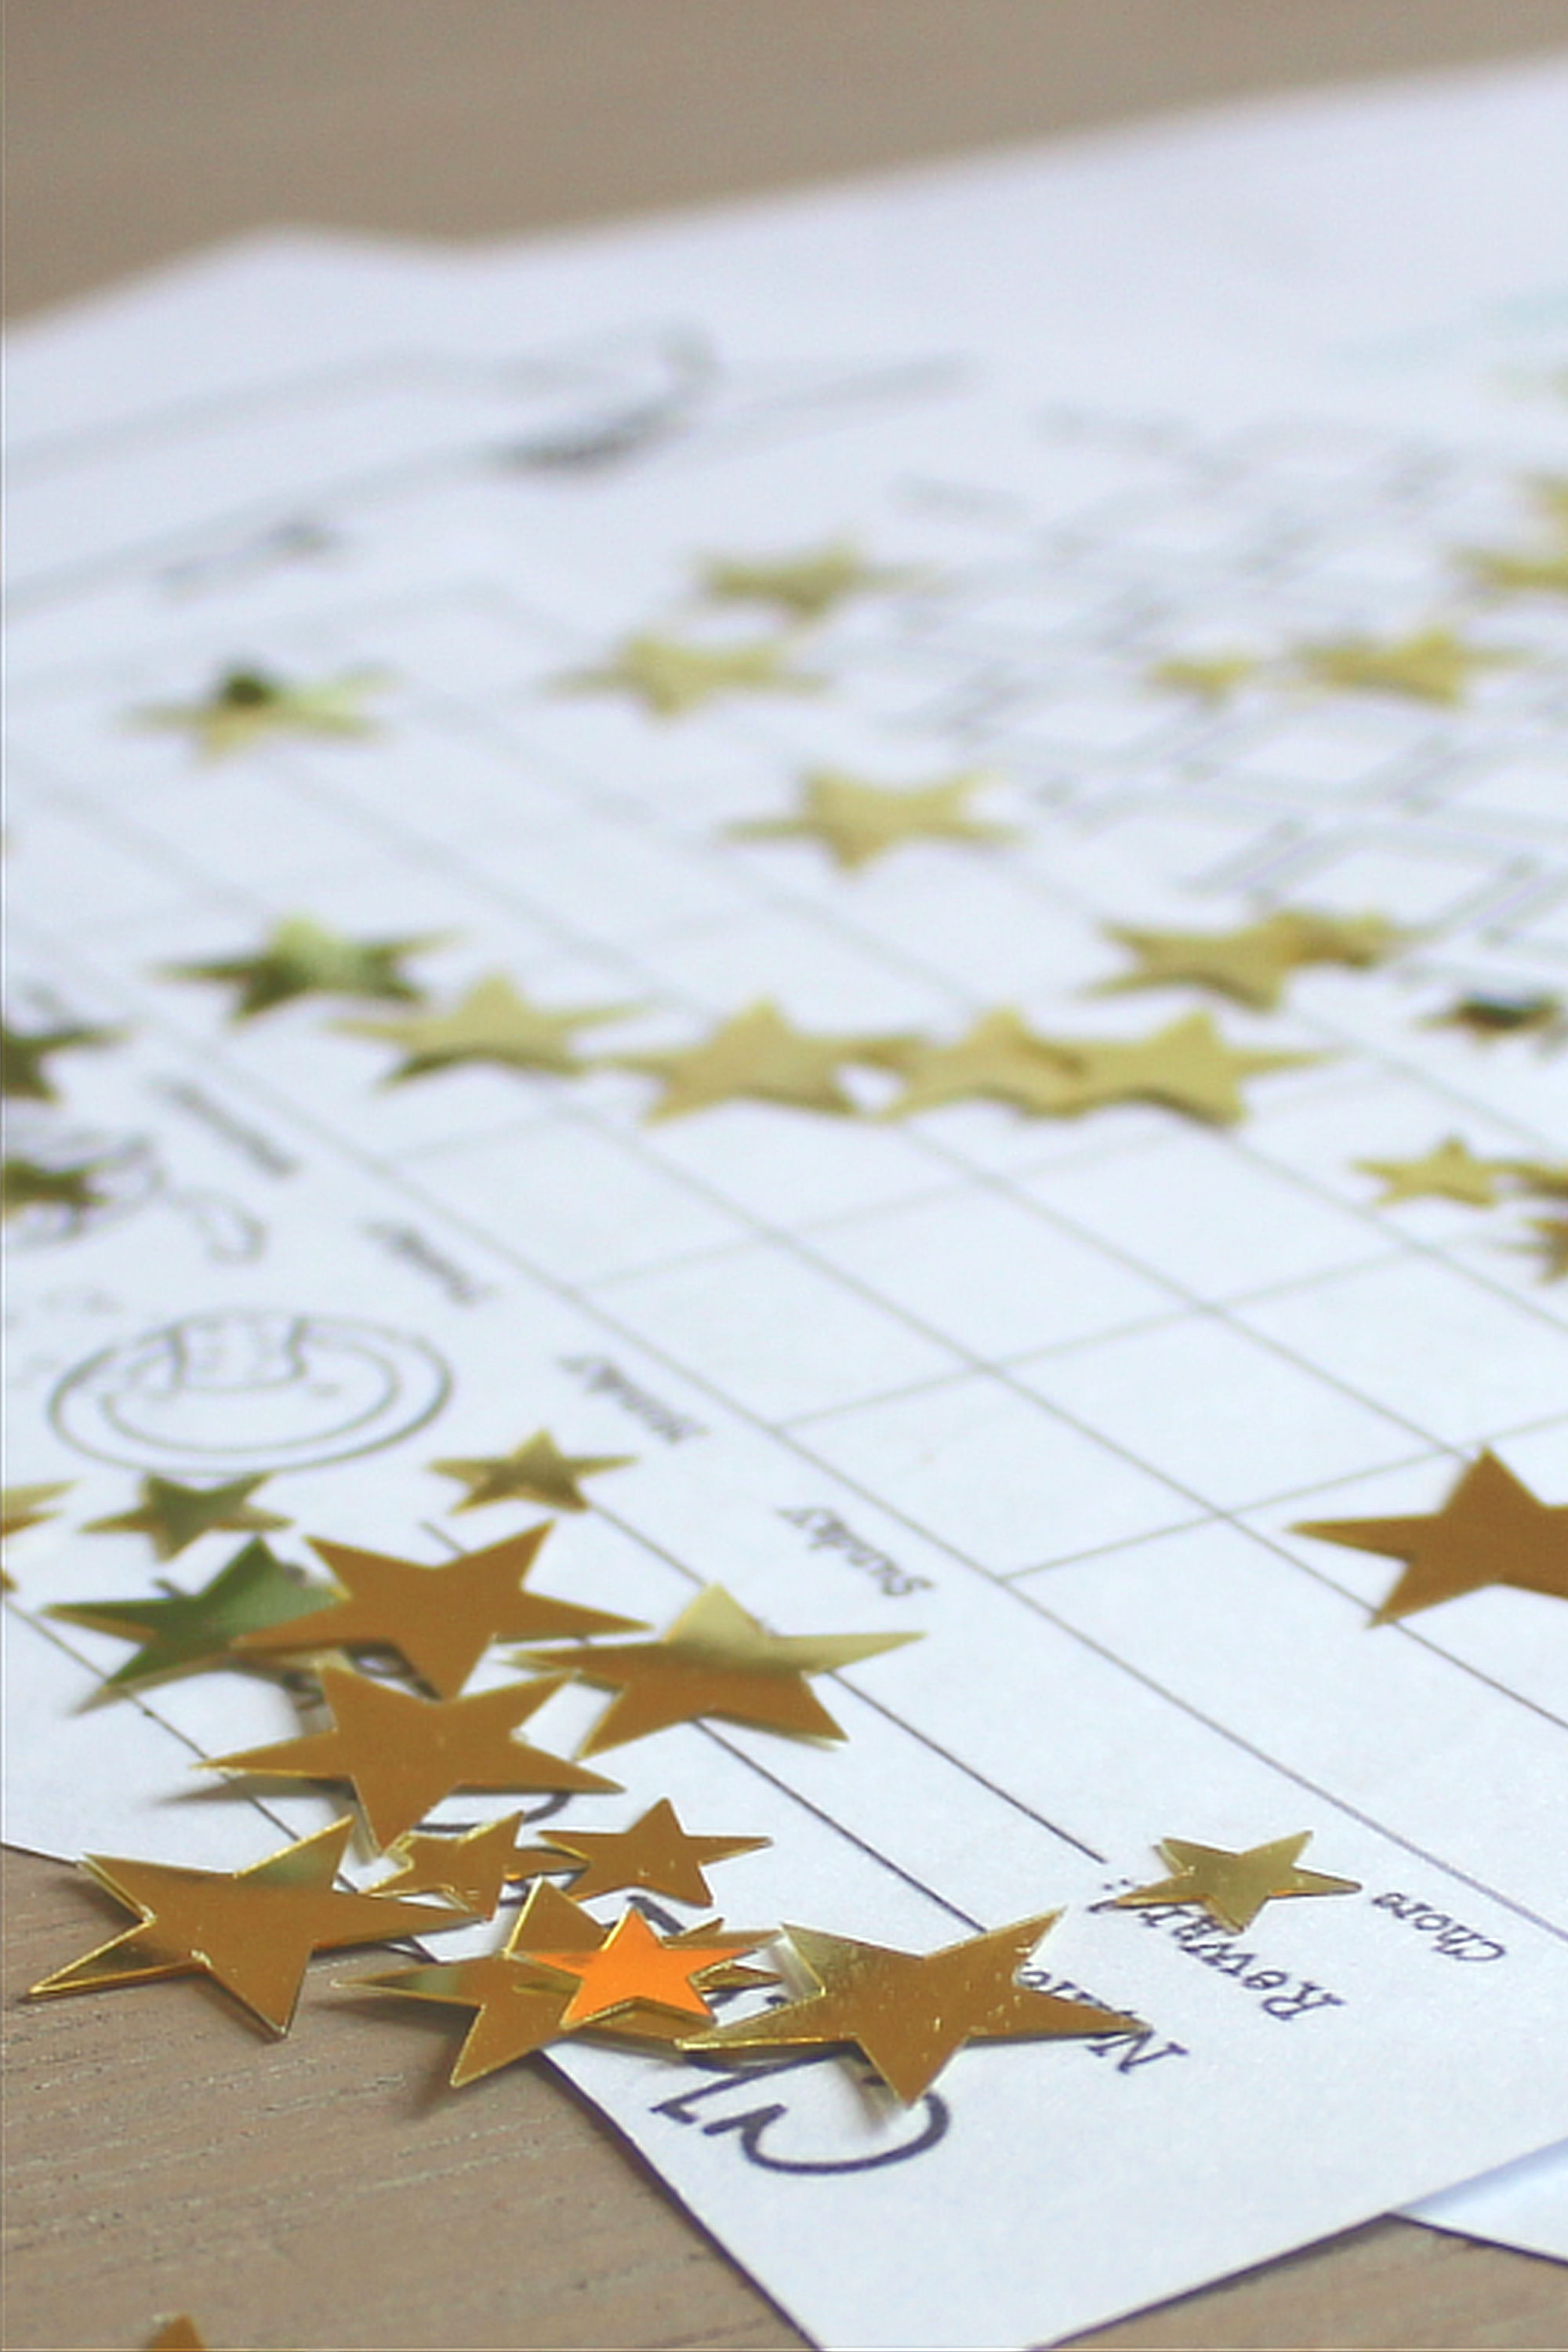 Chore charts on table with gold star stickers scattered around